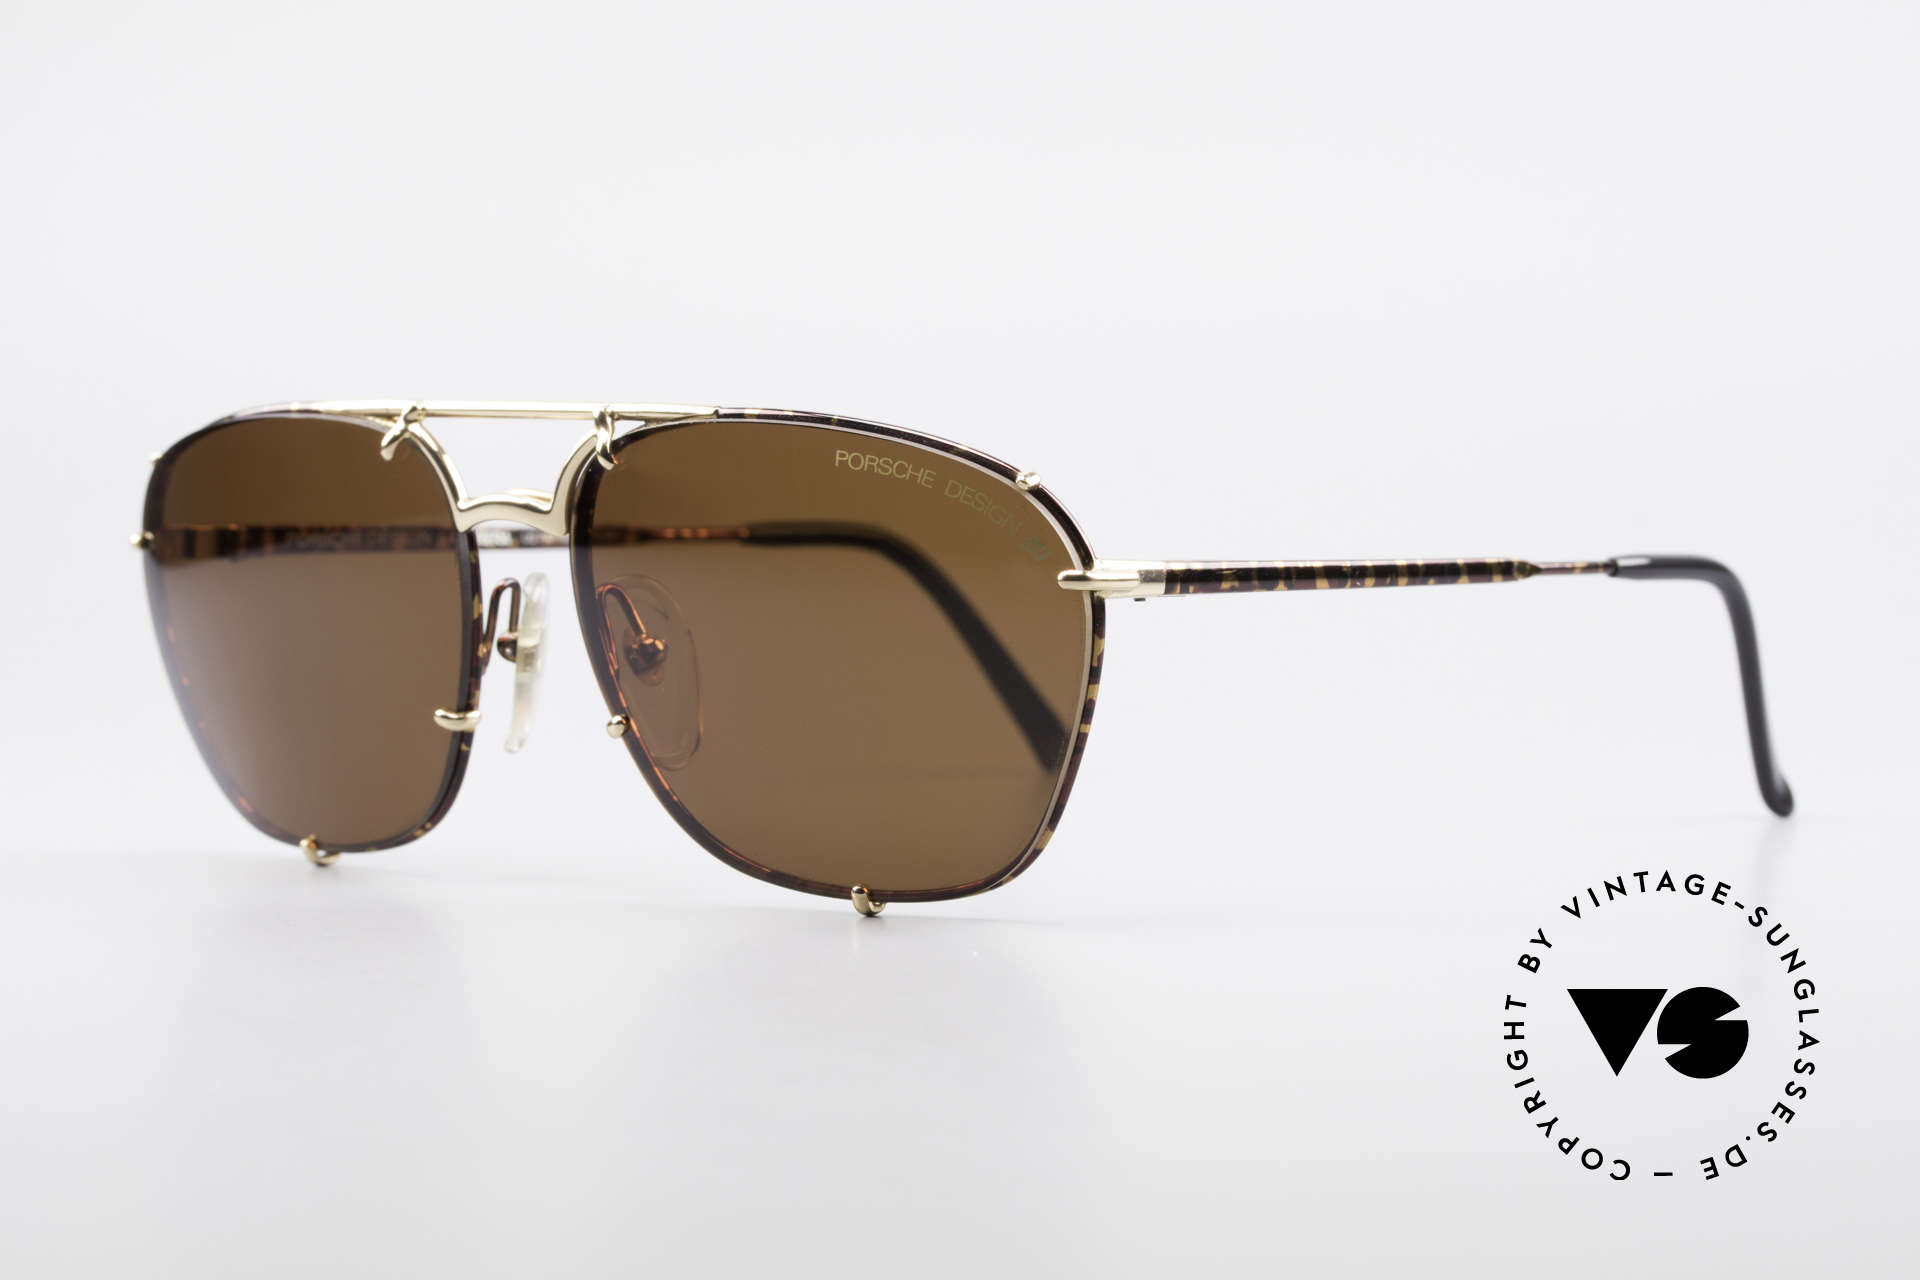 Porsche 5647 90s Classic Vintage Sunglasses, lightweight and very comfortable (high-end quality), Made for Men